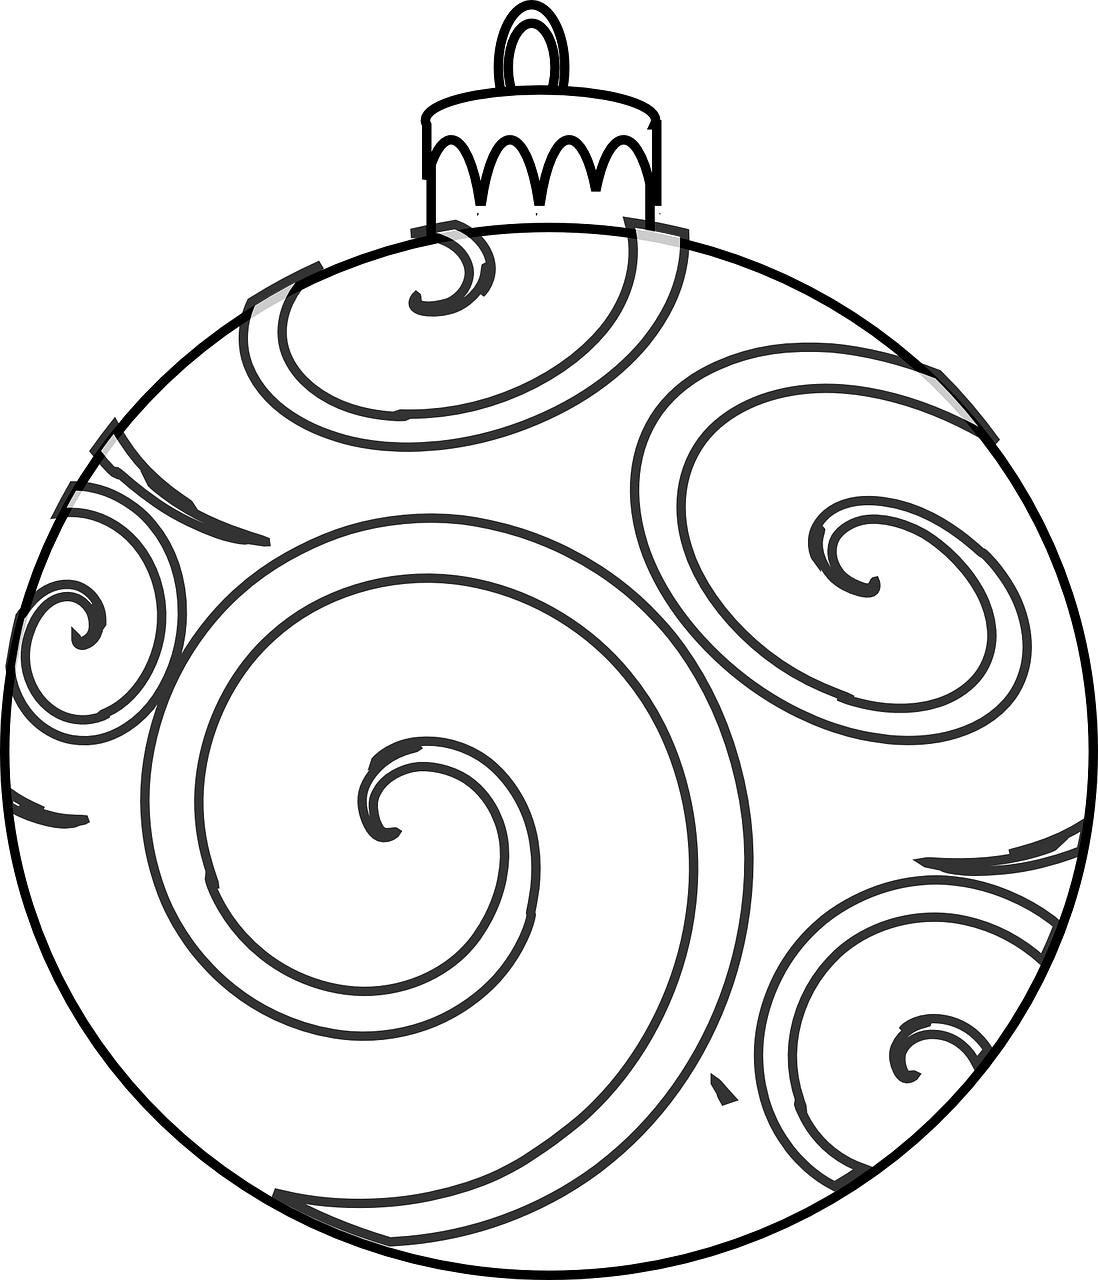 colour and design your own christmas ornaments printables in the - Printable Coloring Ornaments